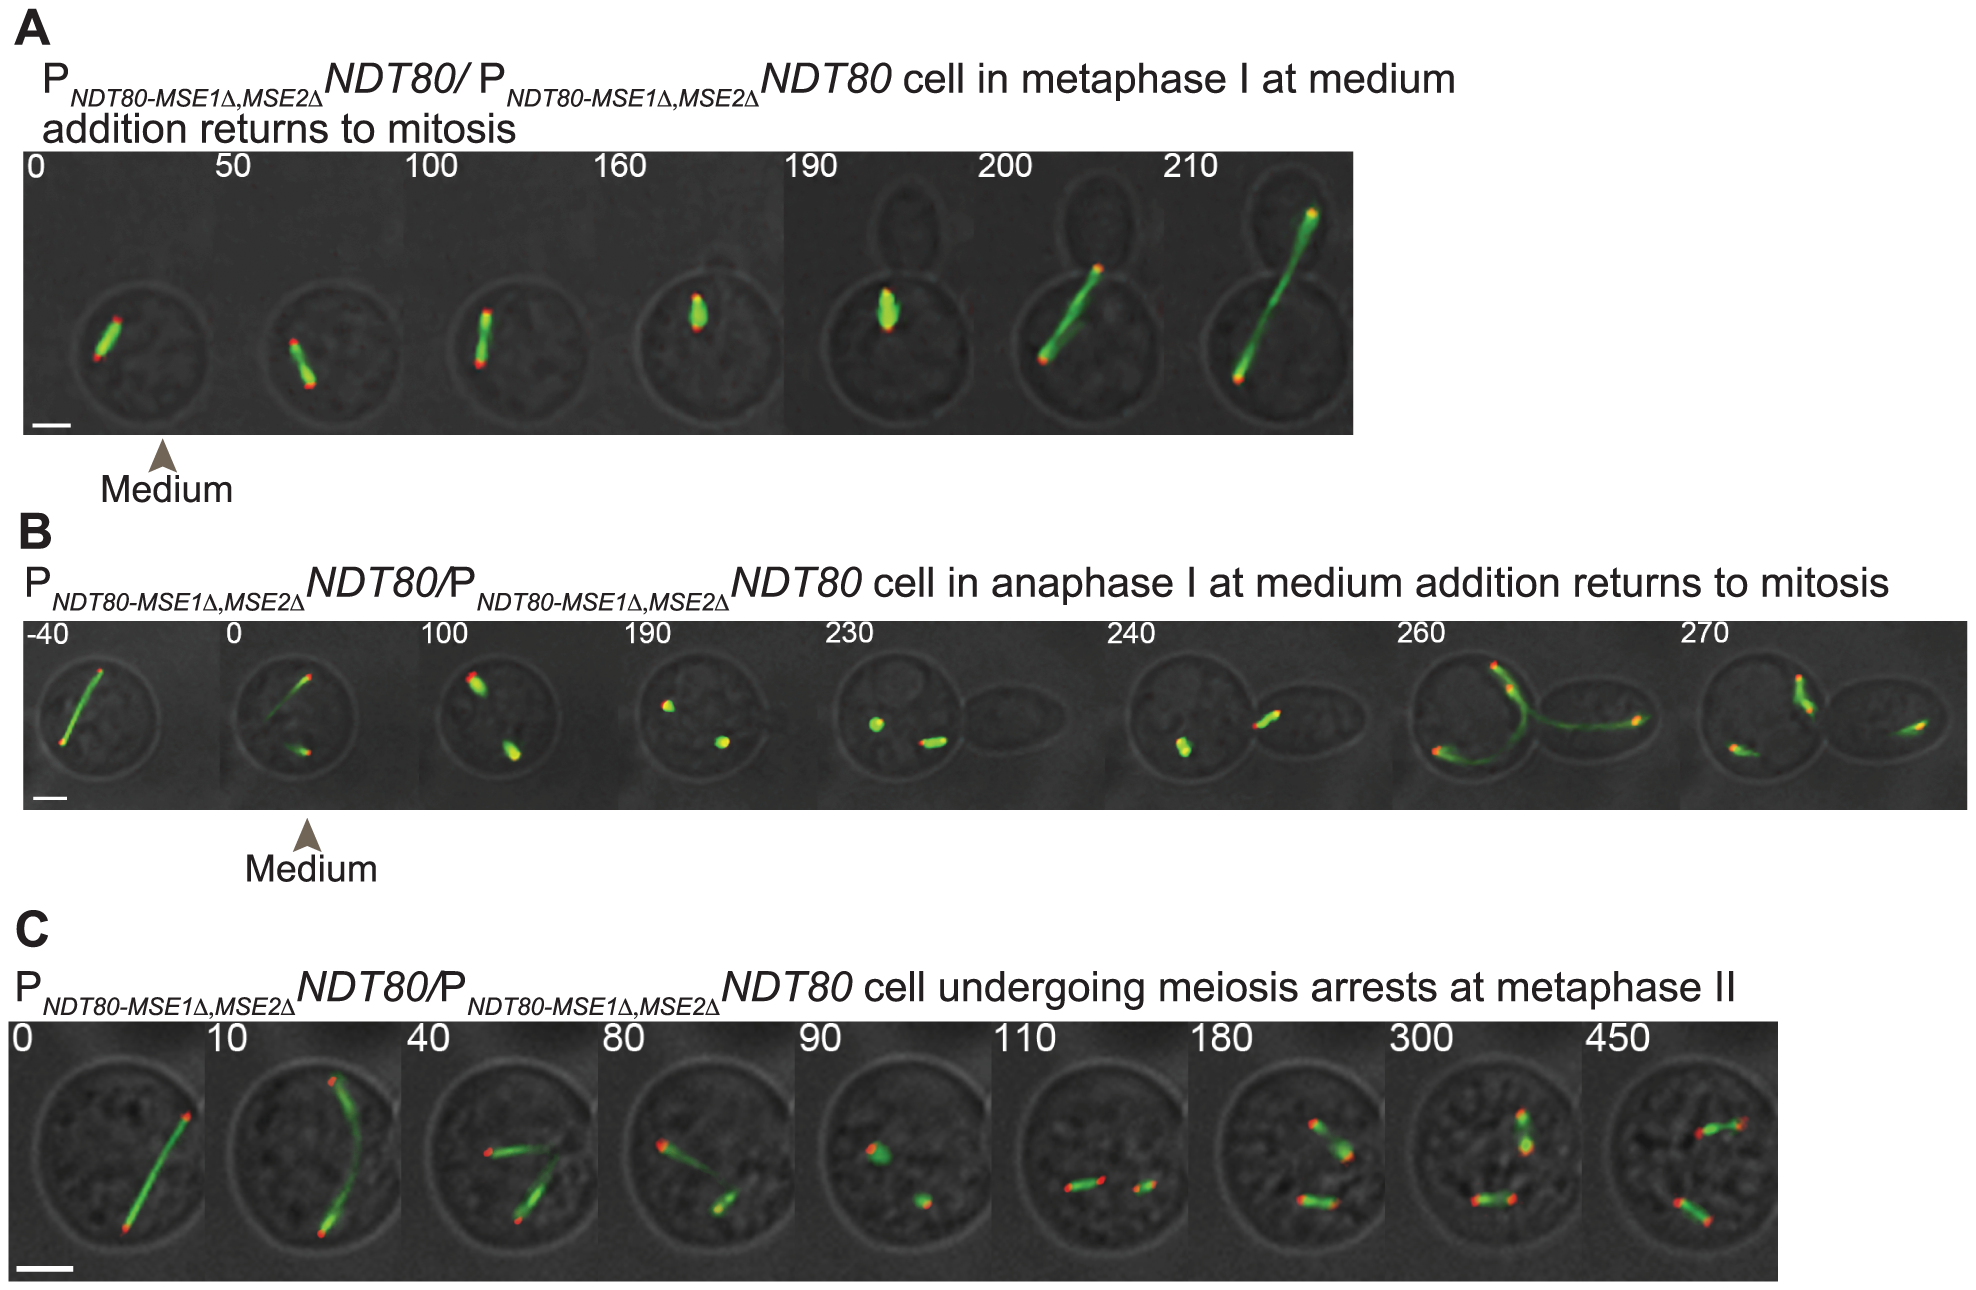 Disruption of positive feedback in <i>NDT80</i> expression results in inappropriately uncommitted cells.